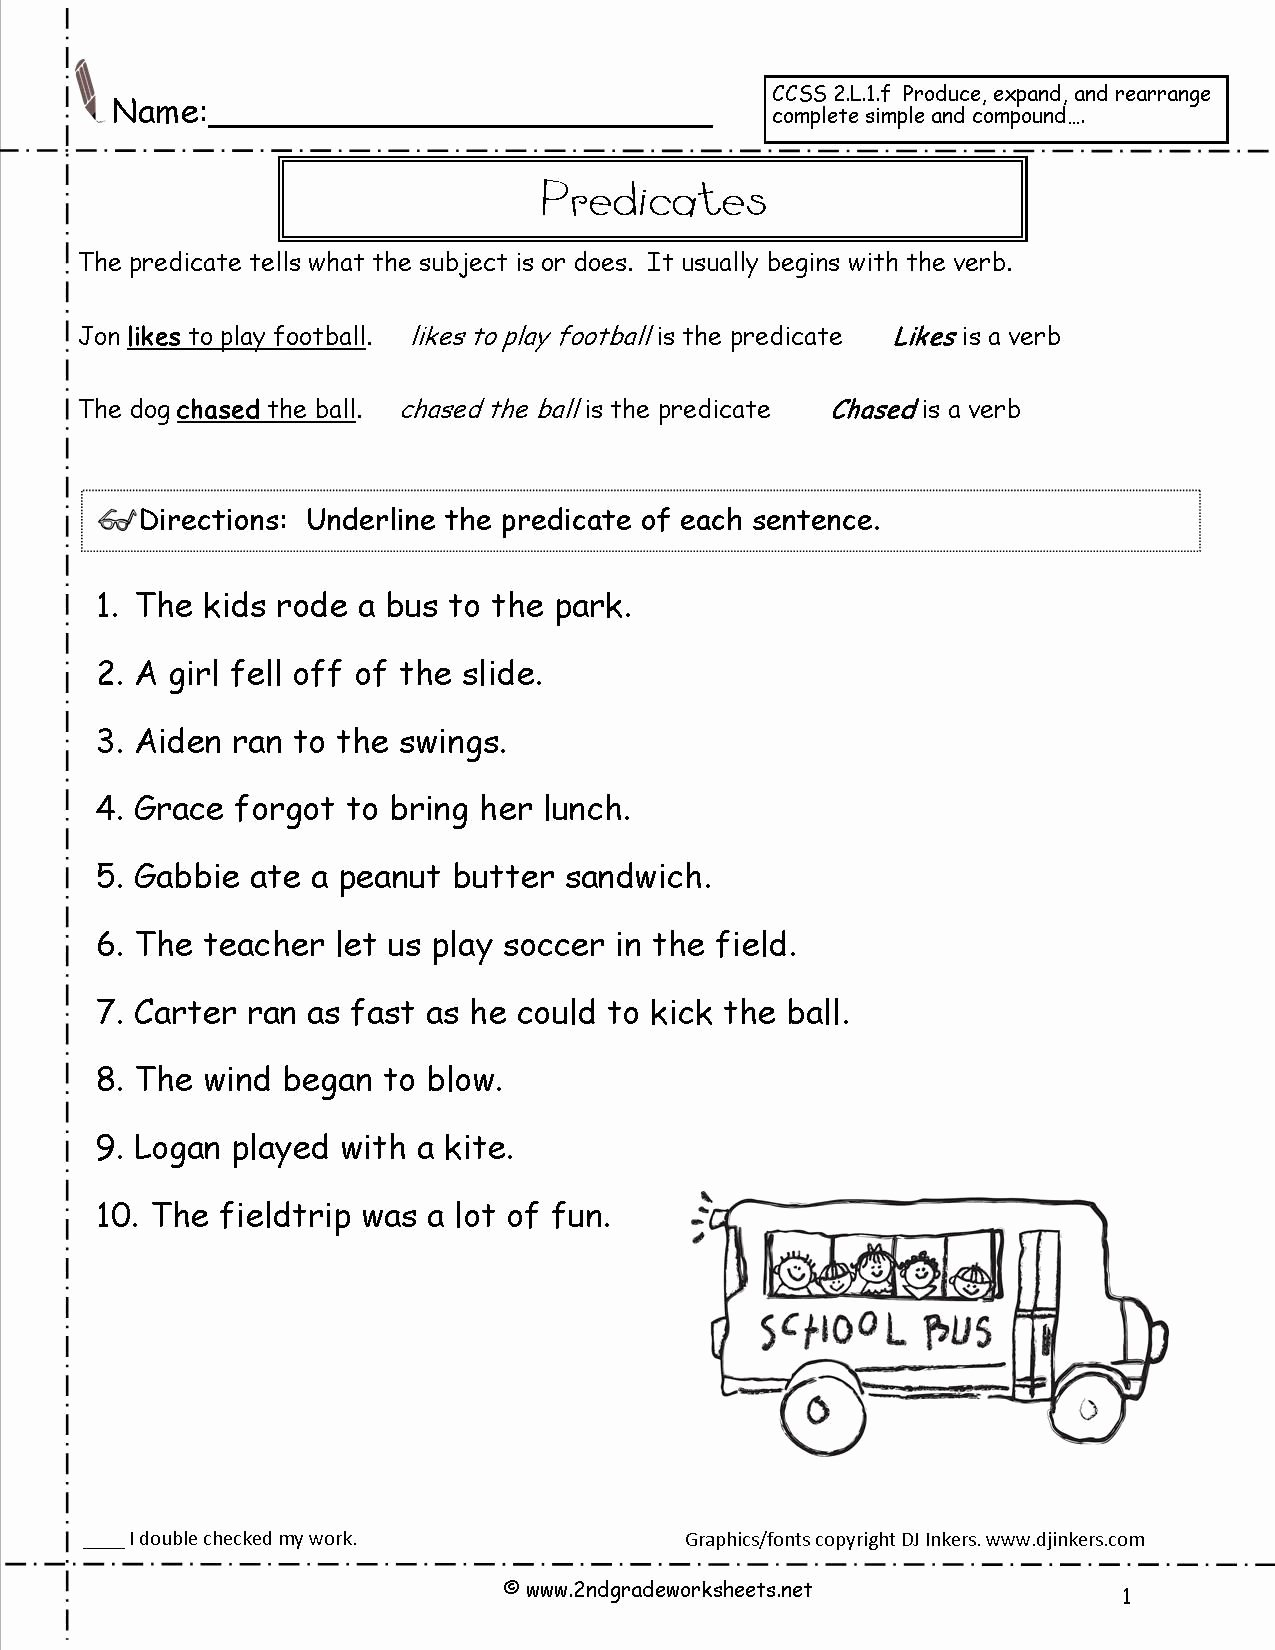 Subject and Predicate Worksheet Best Of Subject and Predicate Sentences Worksheets for 3rd